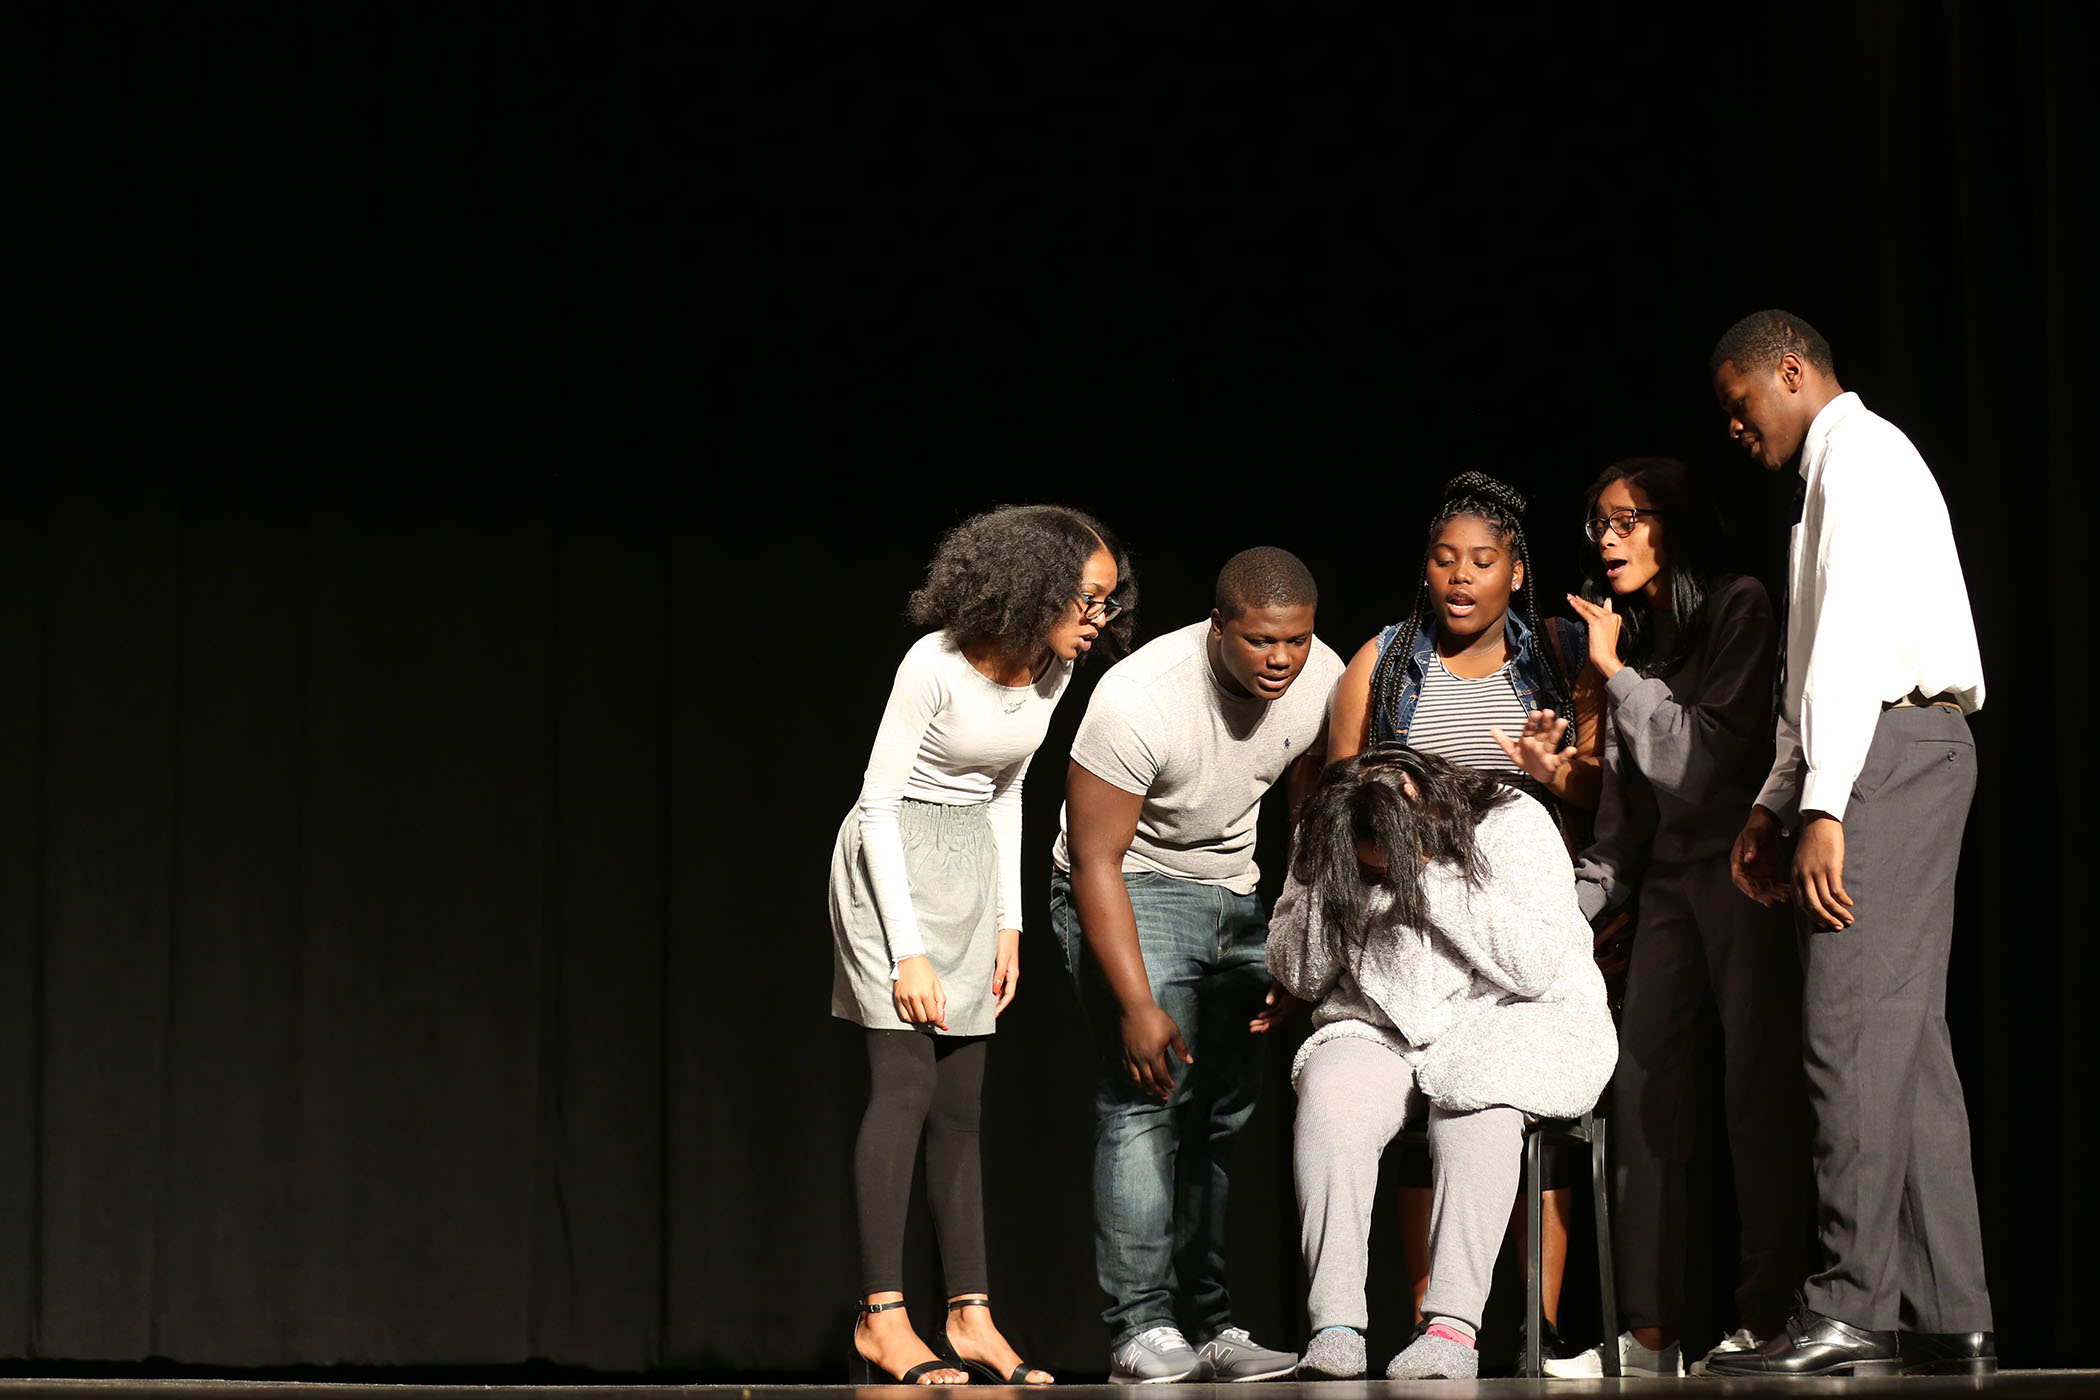 QHS theater students perform their play on stage in the QHS Auditorium.